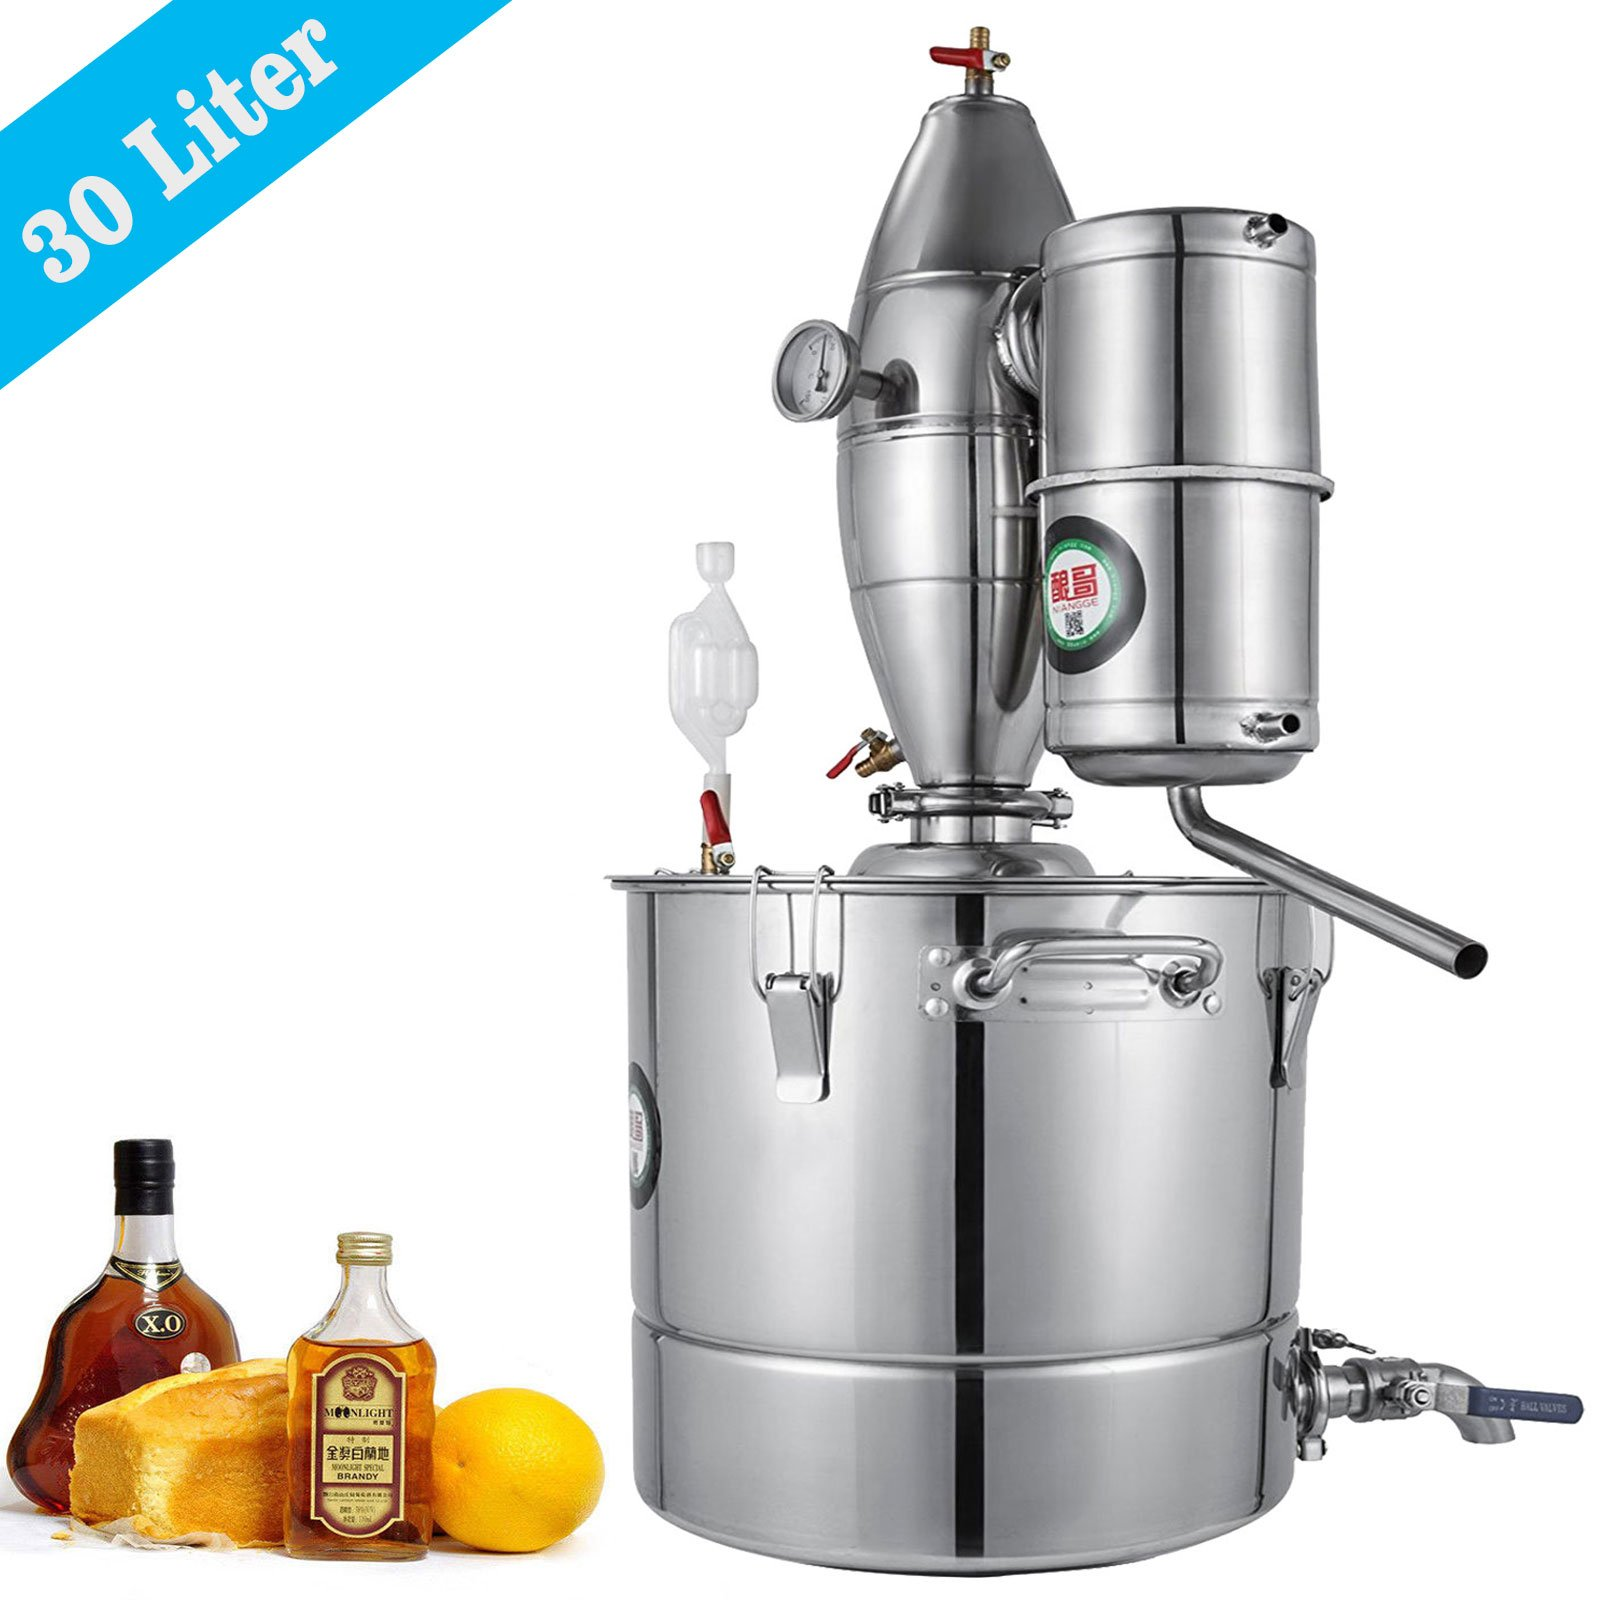 VEVOR 30L 7.9Gal Water Alcohol Distiller 304 Stainless Steel Alcohol Distiller Home Kit Moonshine Wine Making Boiler with Two Thermometers (30L Distiller)